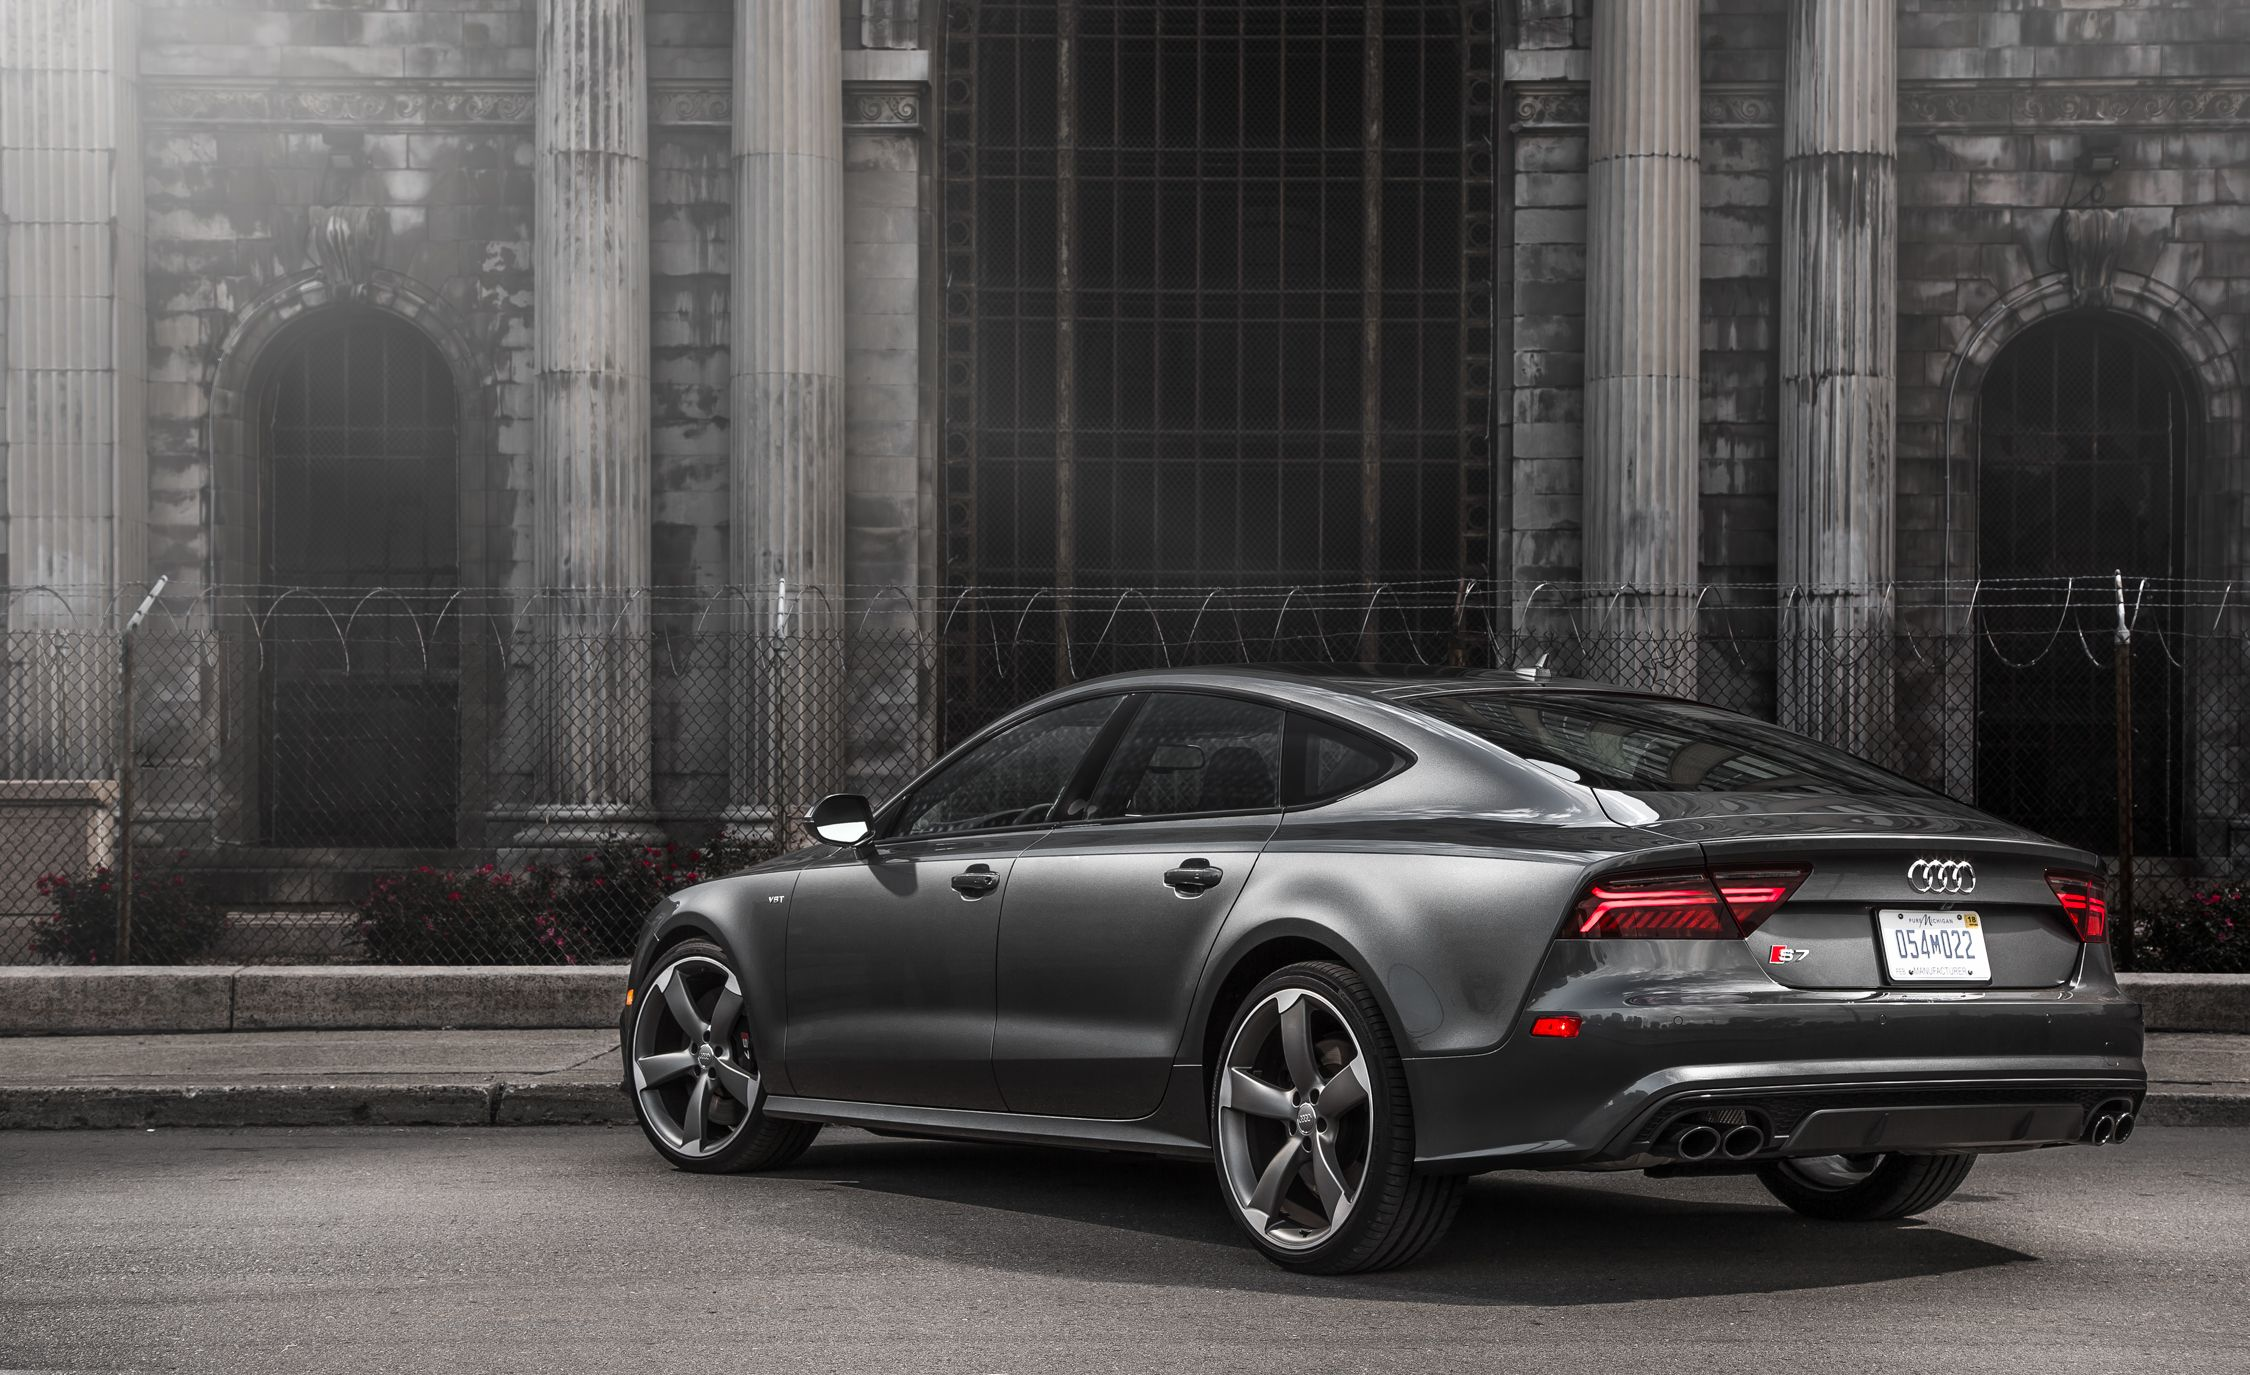 Audi S7 Reviews | Audi S7 Price, Photos, and Specs | Car and Driver